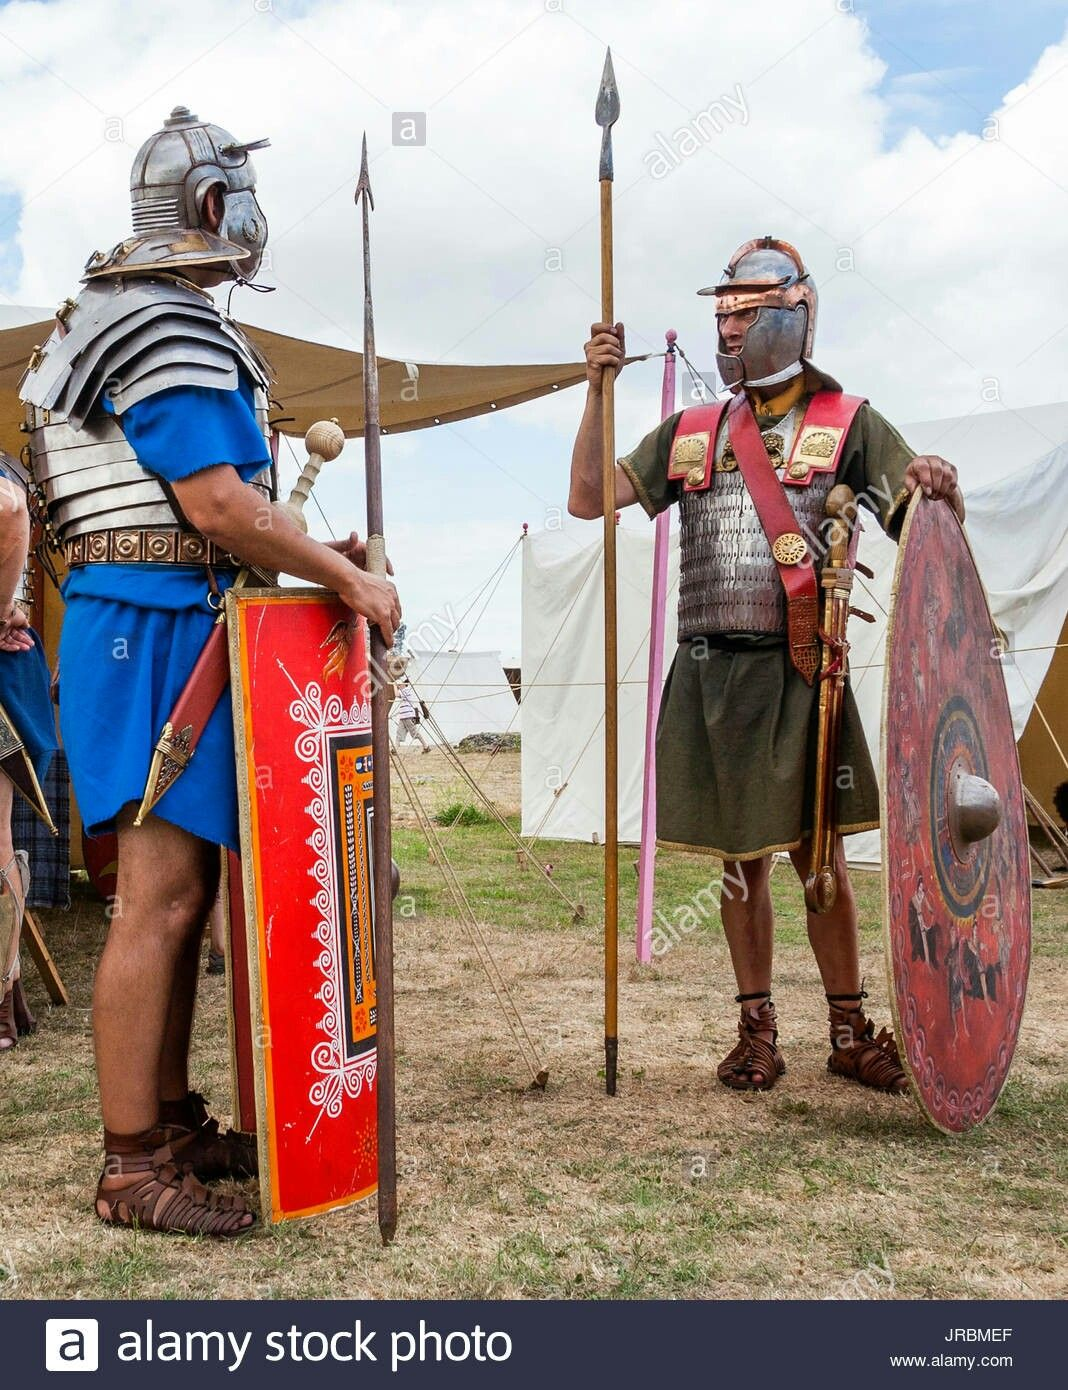 Pin By Cannicus Palentine On History Roman Soldiers Roman